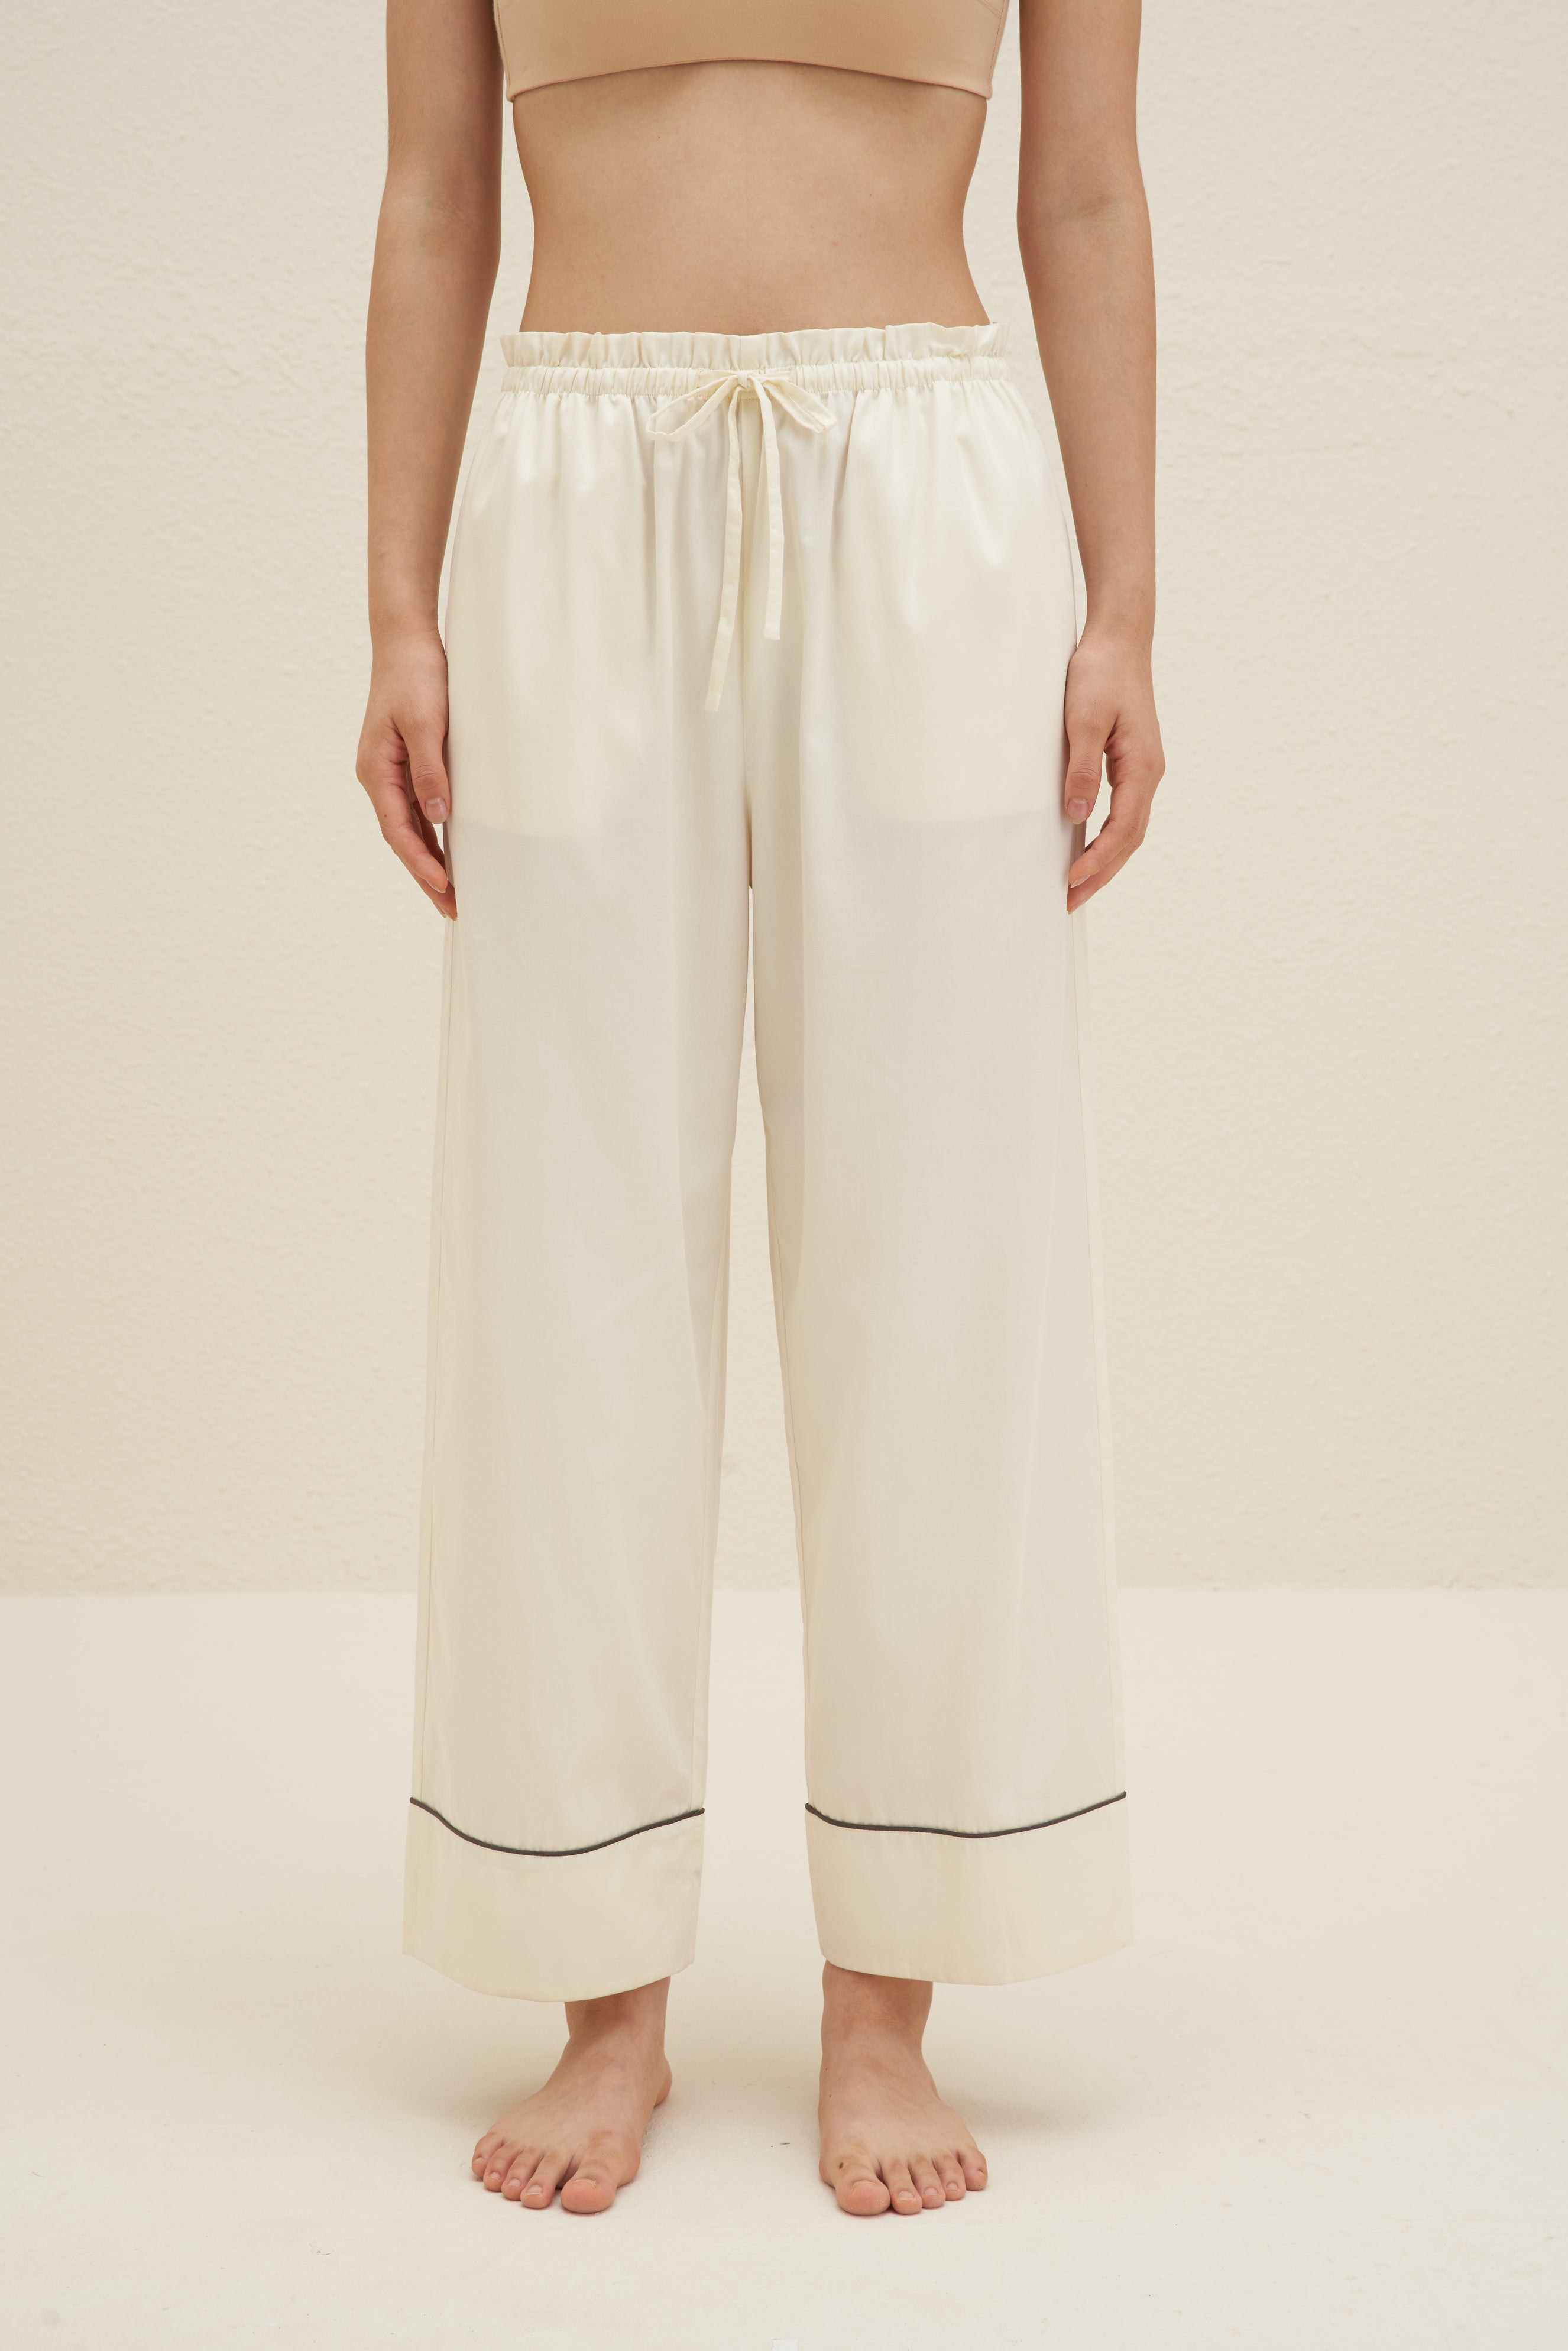 Model wearing NEIWAI's Classic Embroidered Straight Leg Pajama Pants in Pristine.